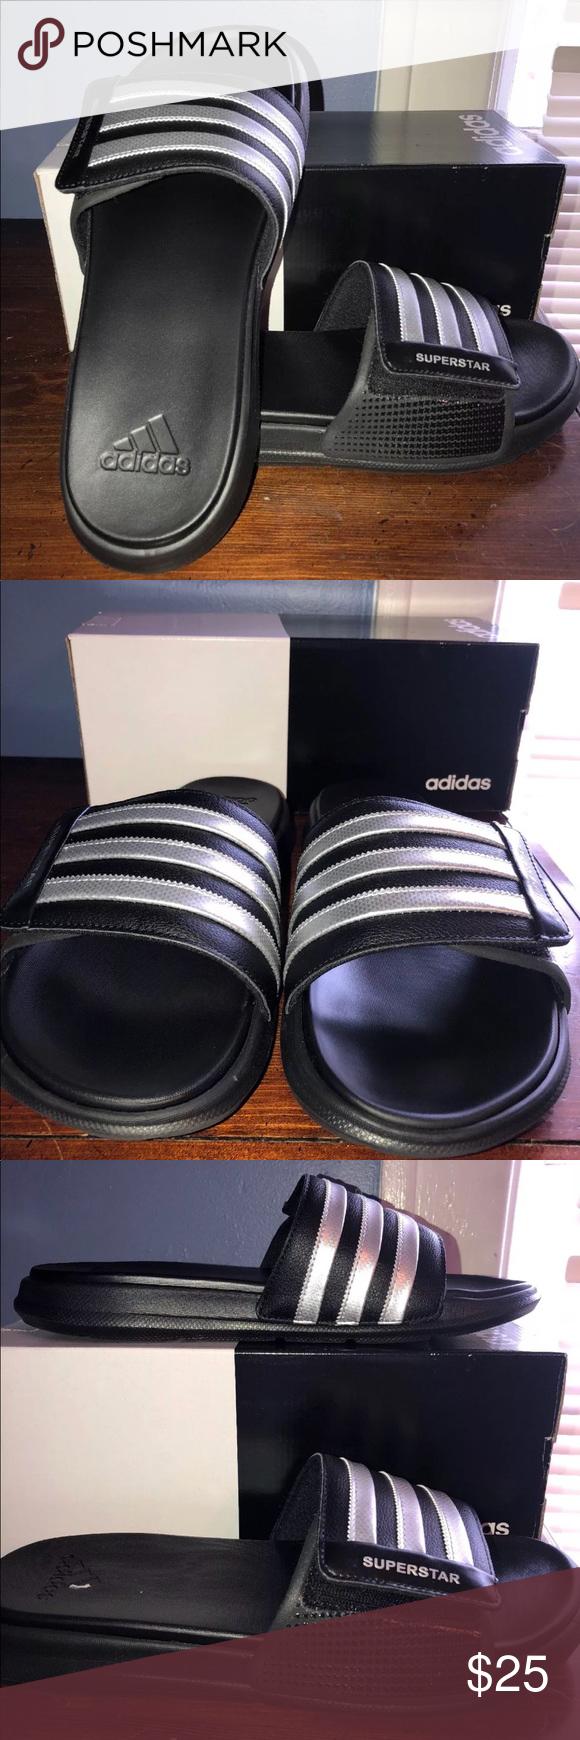 2f364fb44a3e8 Adidas Superstar 4G Men s Slides SZ 11 Men s Adidas Superstar 4G Slides Size   11 Condition